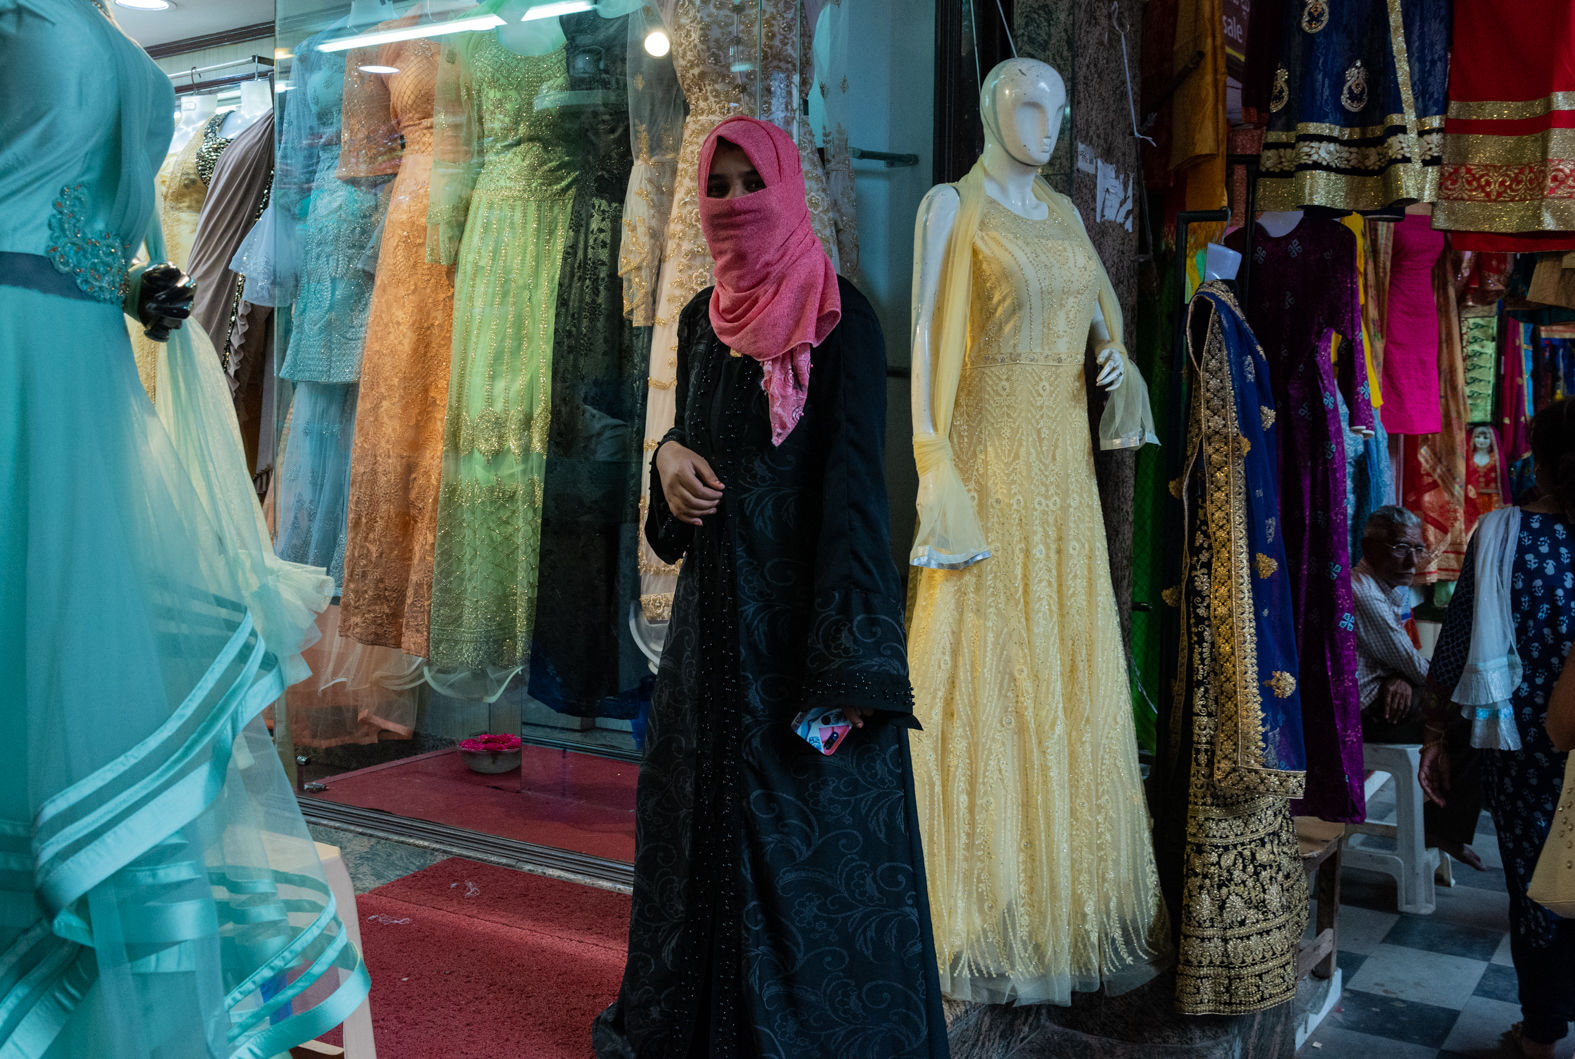 Clothing bazaar, Hyderabad